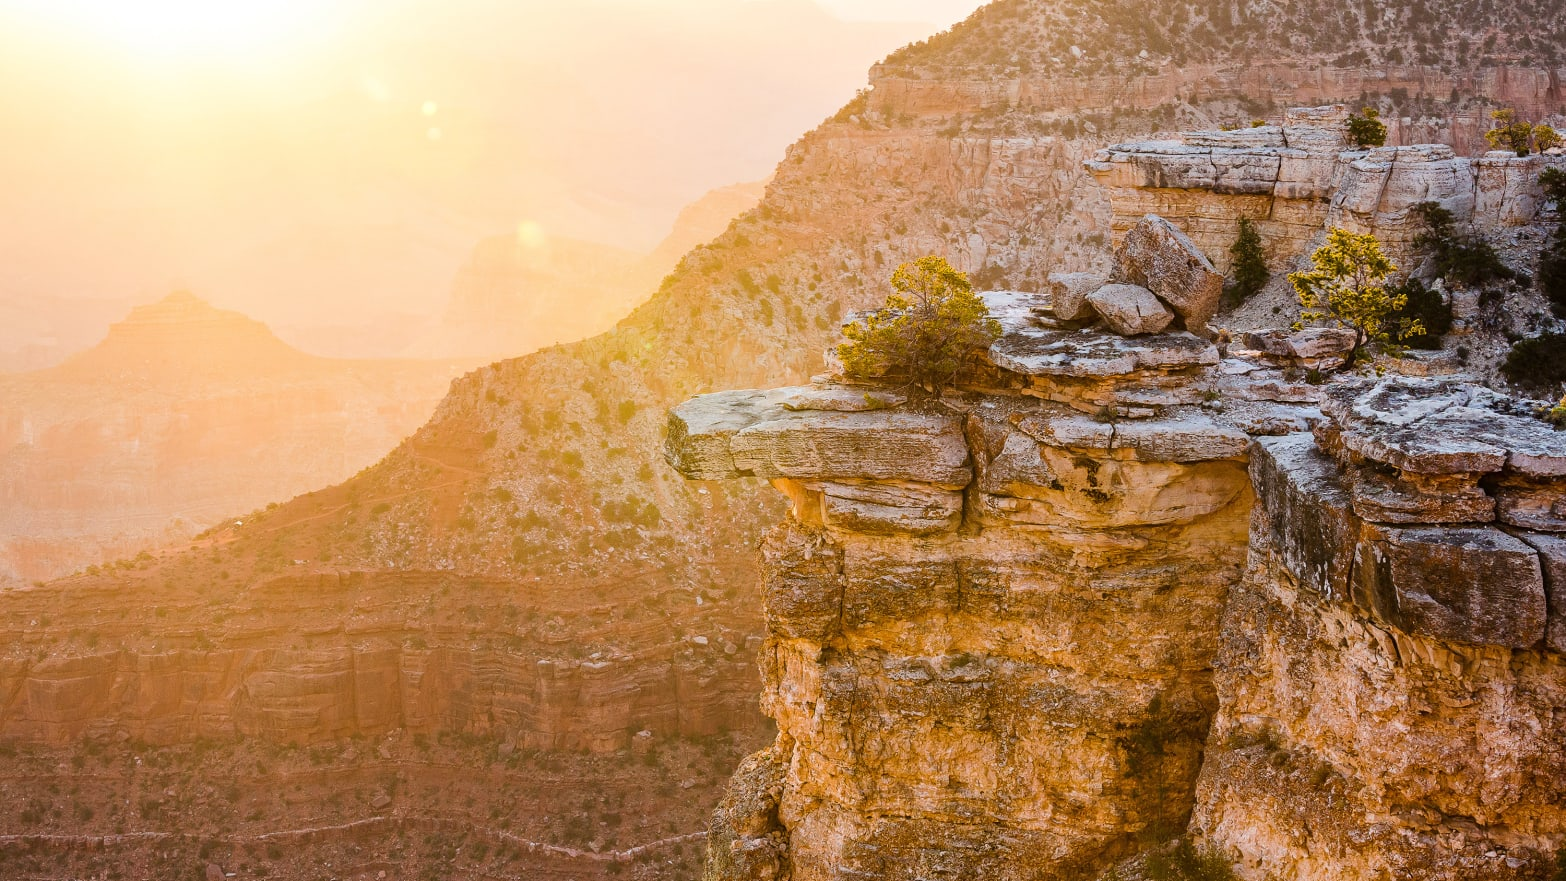 Grand Canyon Death: How to Make Sure It Doesn't Happen to You